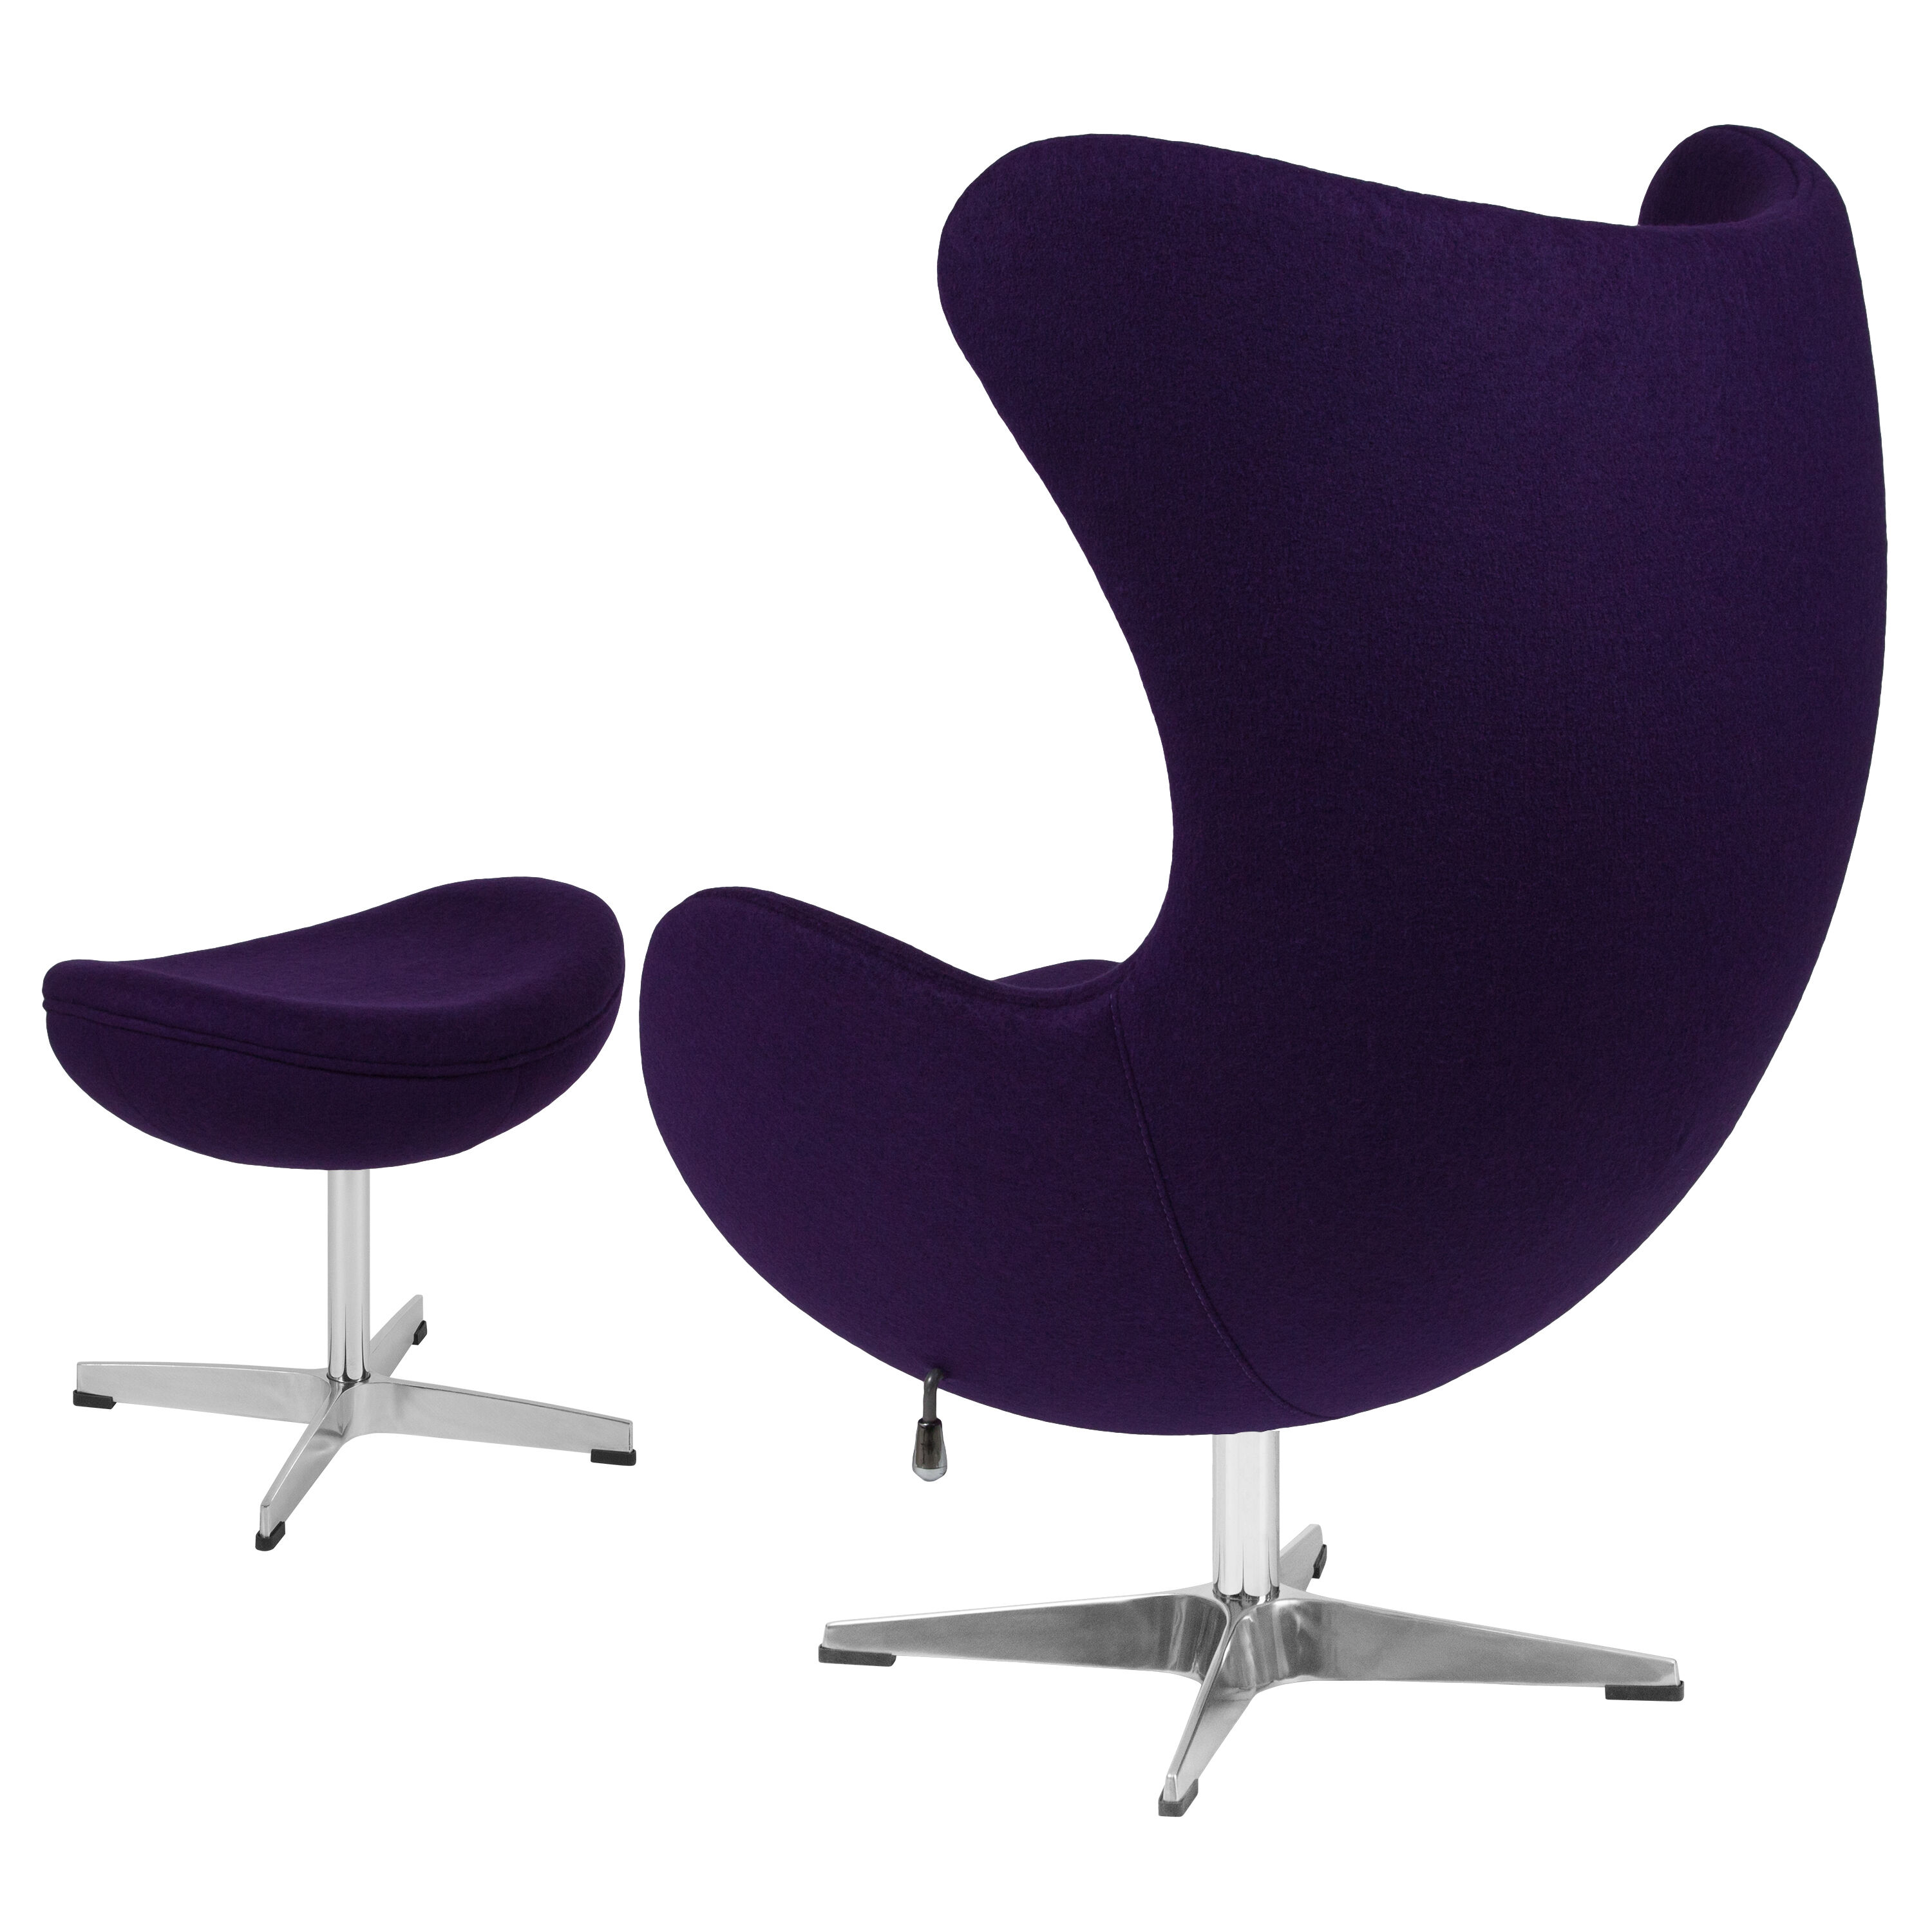 Wonderful ... Our Purple Wool Fabric Egg Chair With Tilt Lock Mechanism And Ottoman  Is On Sale ...